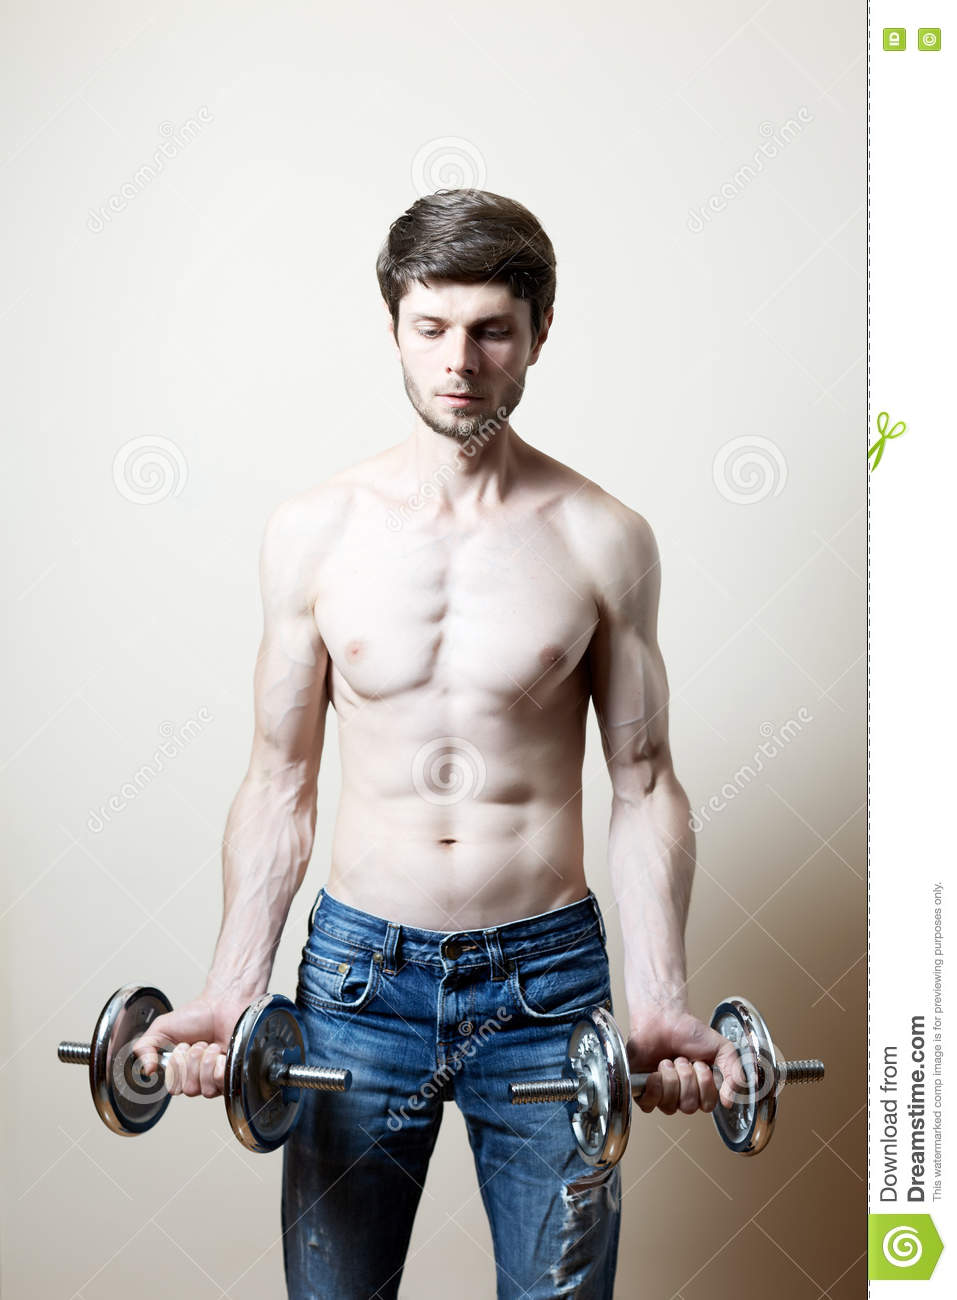 Man lifting dumbbell stock photo  Image of healthy, biceps